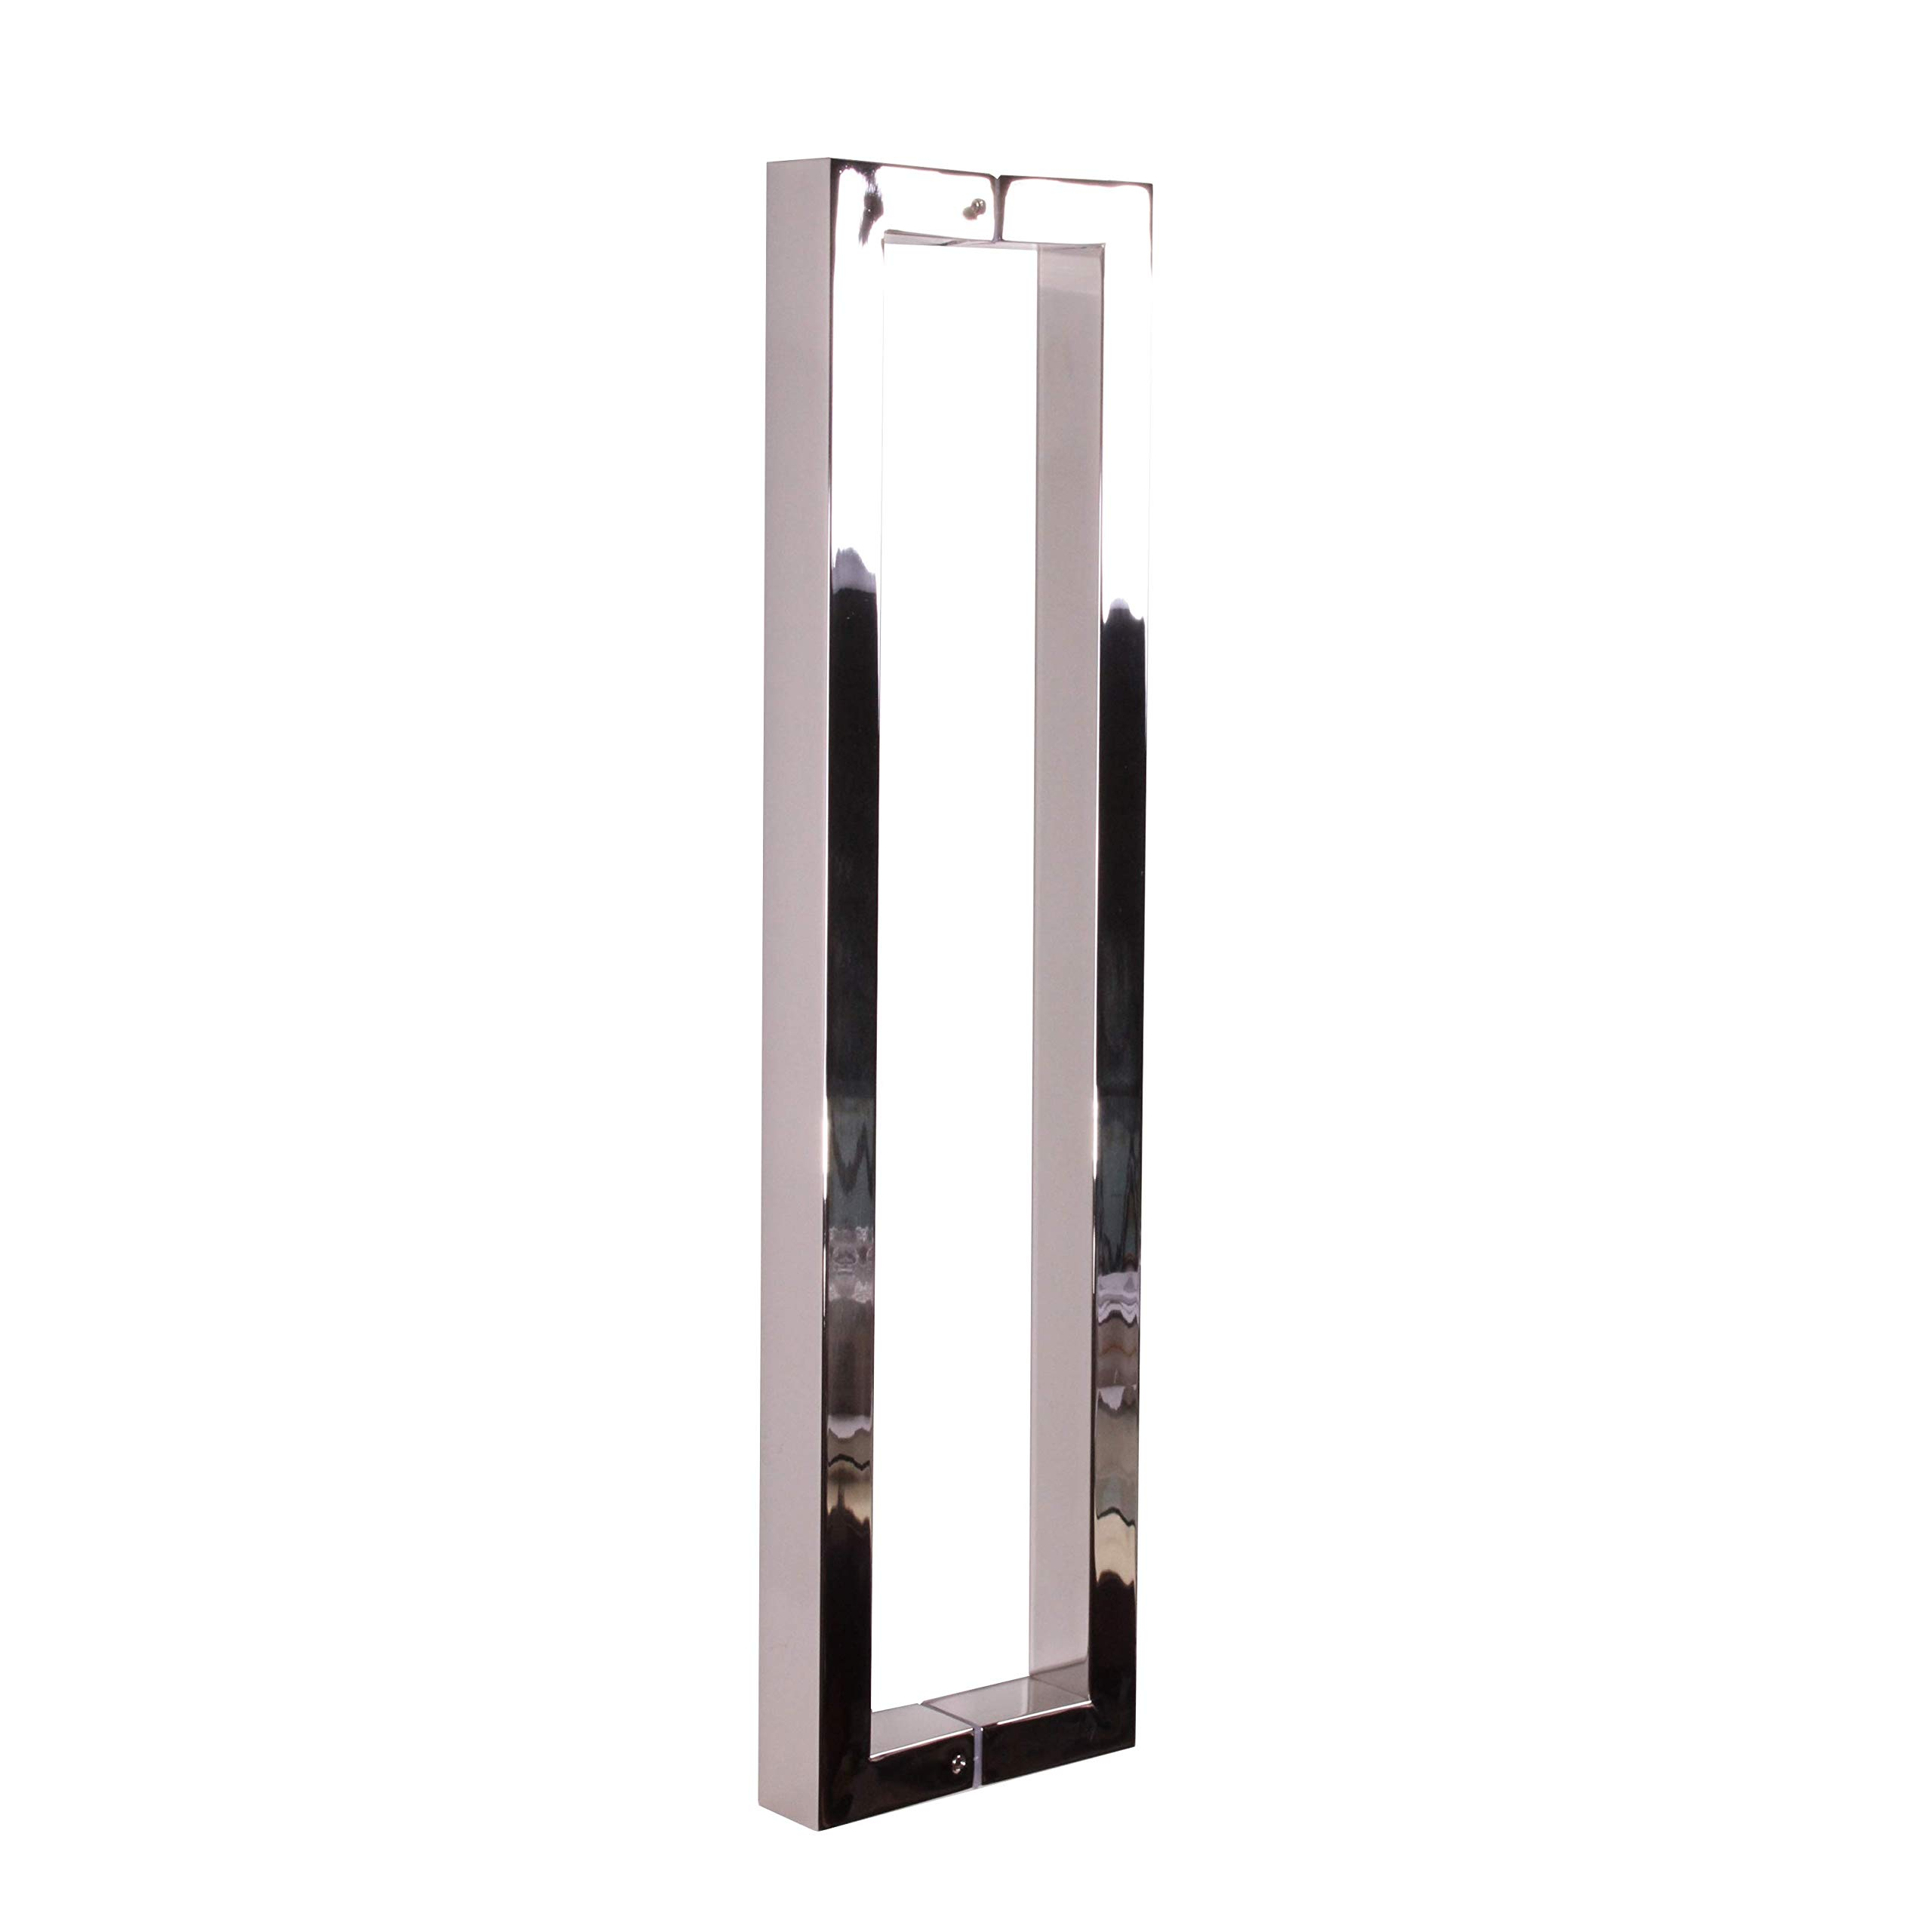 Pull Push 16 inches Handles for Entrance Entry Front Door, Interior and Exterior, Mirror Finish, Storefront Door, Commercial Entry Gate and Office Door, Modern and Decent Design Rectangle Style.